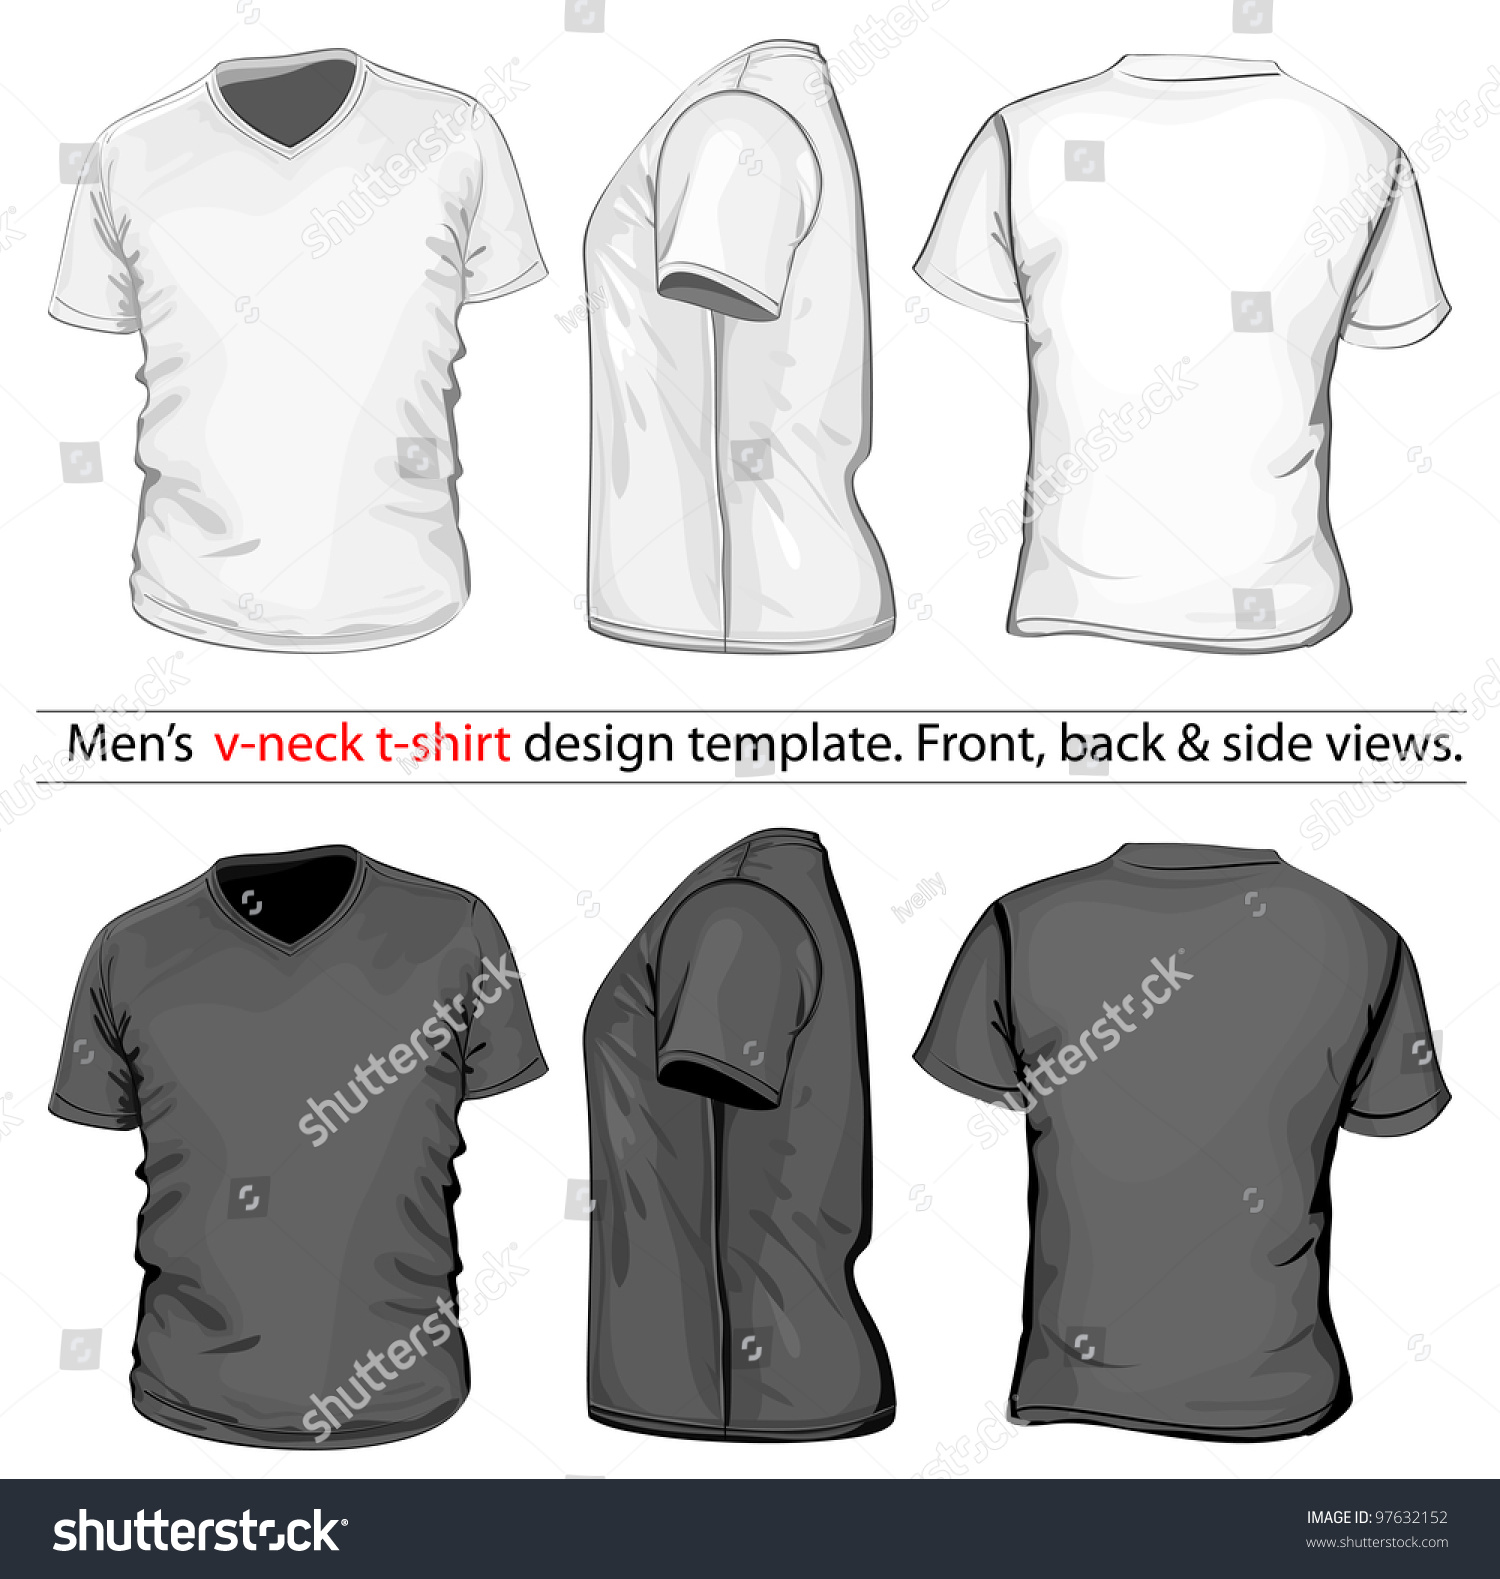 Black t shirt vector free - Black T Shirt Vector Free Download Vector Men S V Neck T Shirt Design Template Front Download